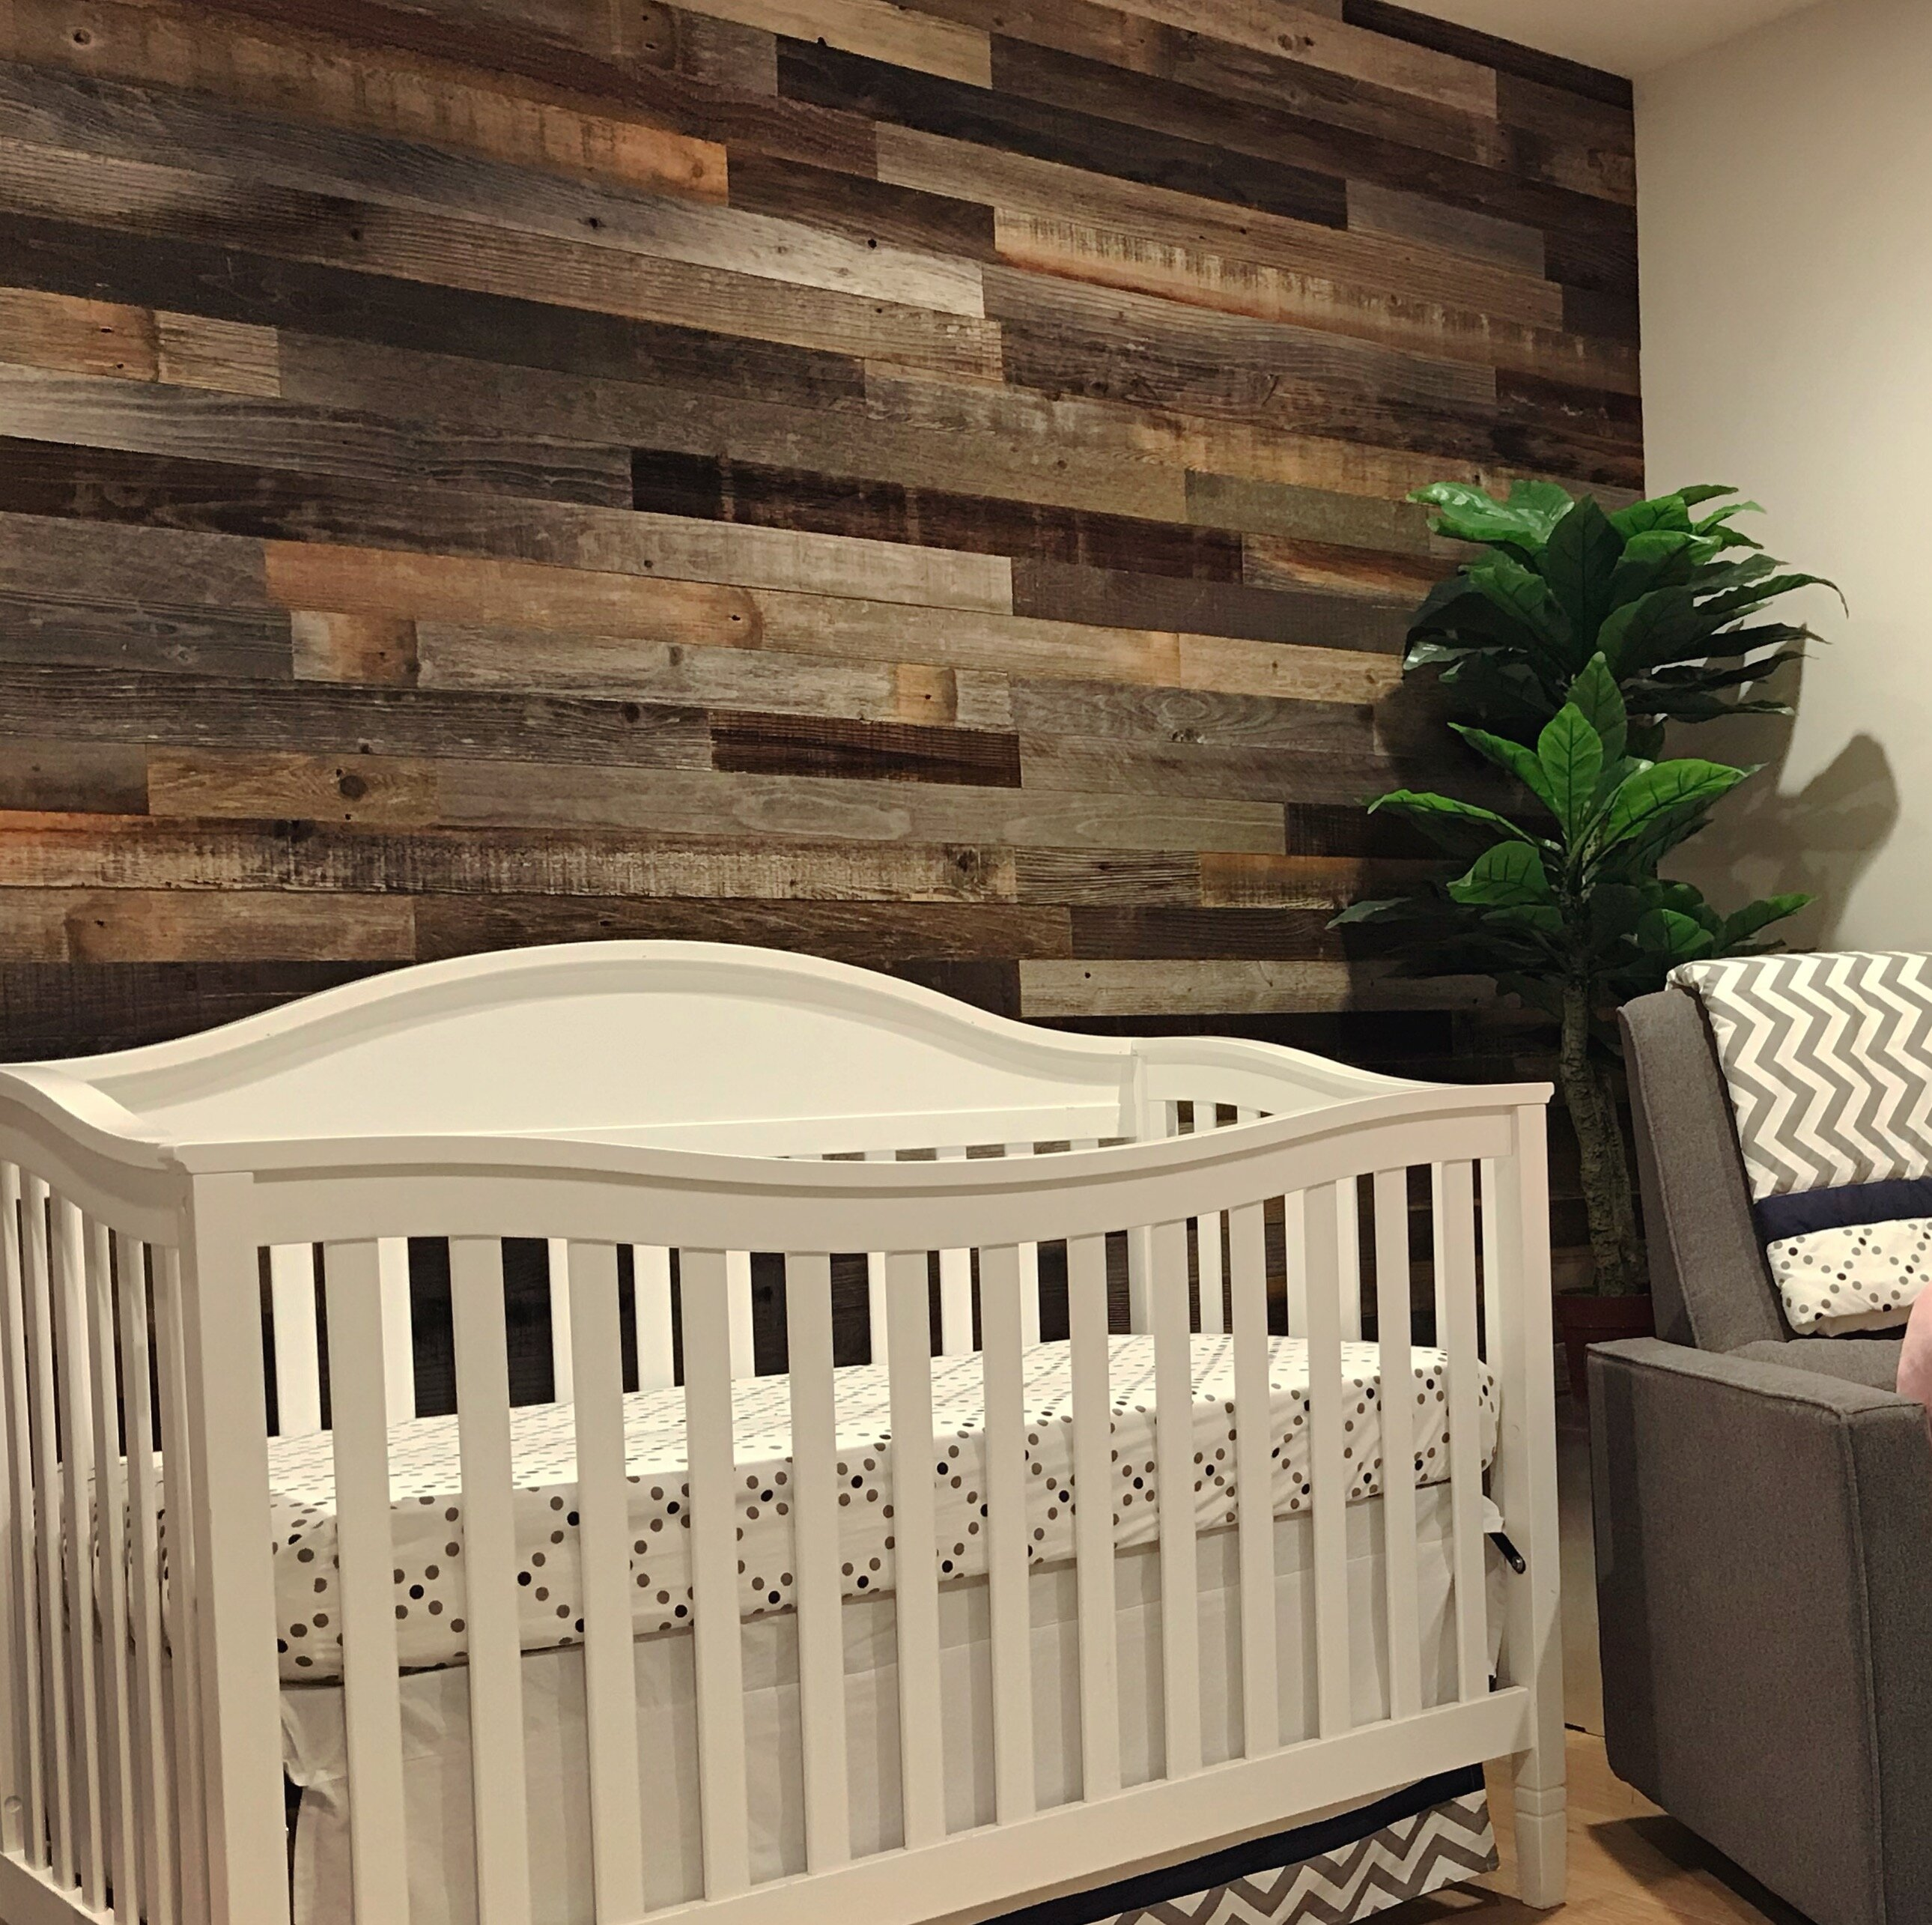 3 Reclaimed Barnwood L And Stick Wall Paneling In Mixed Gray Brown